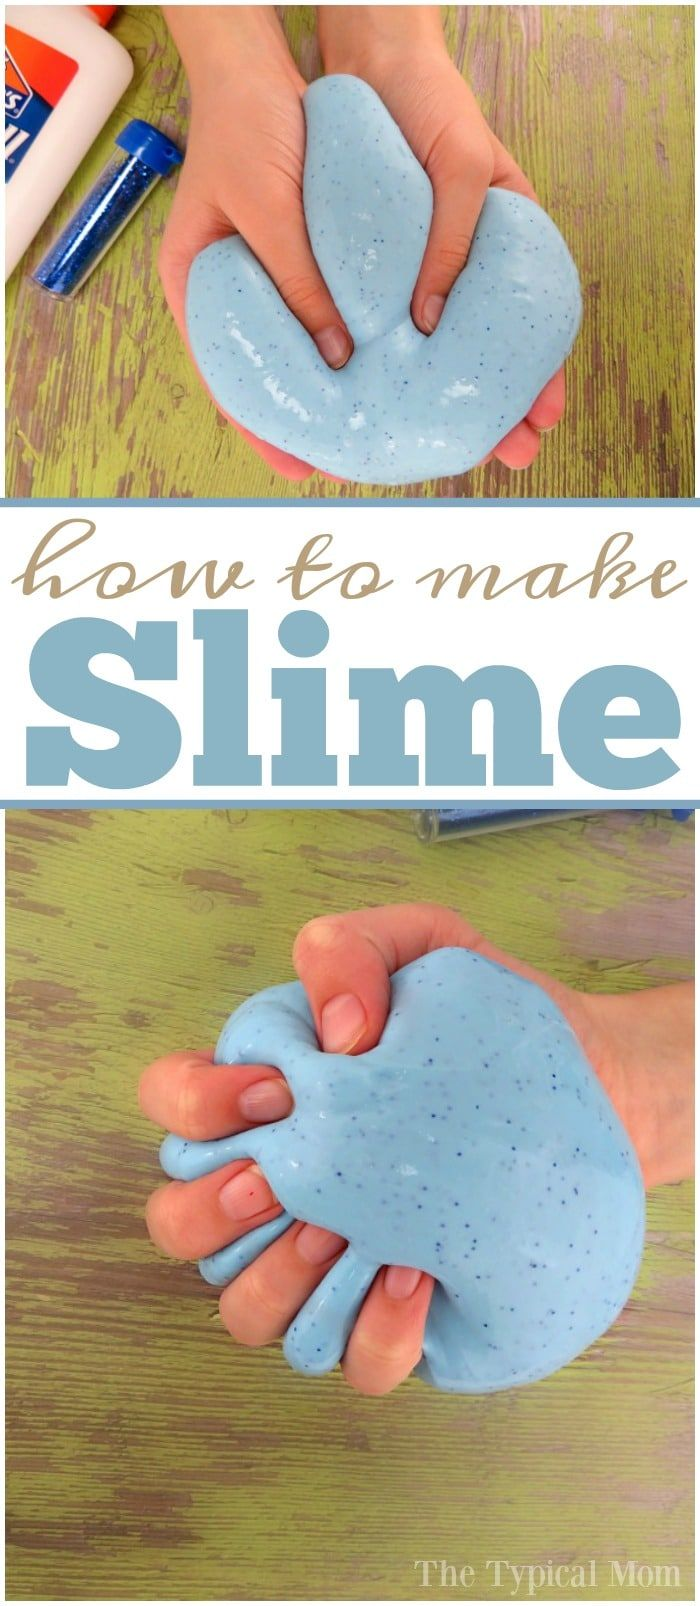 How to make slime with glue and a little glitter inside too! Easy recipe using just a few ingredients, and you can make it any color you like. via @thetypicalmom